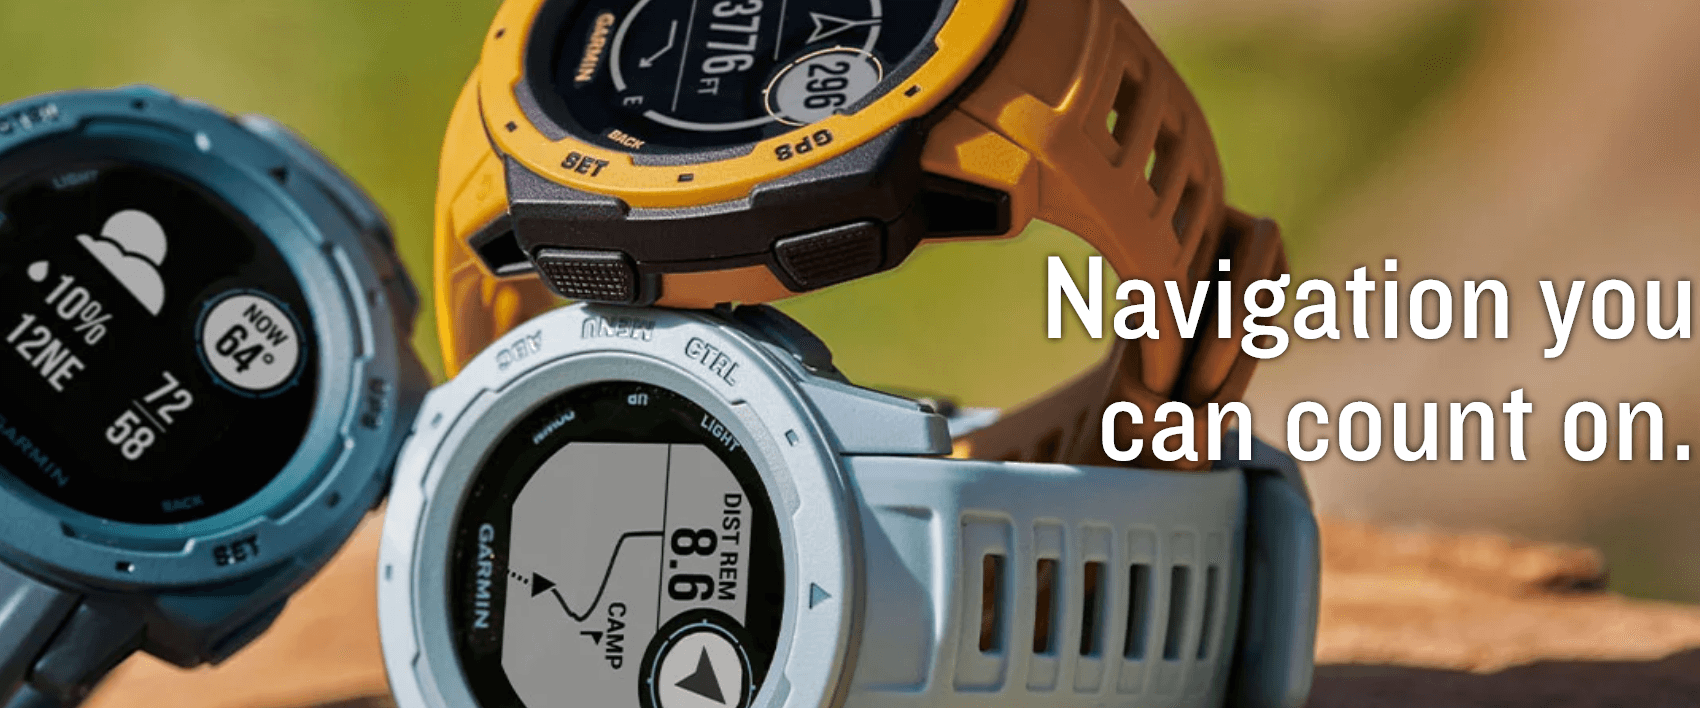 Rugged SA Garmin Instinct Outdoor Smart Watch